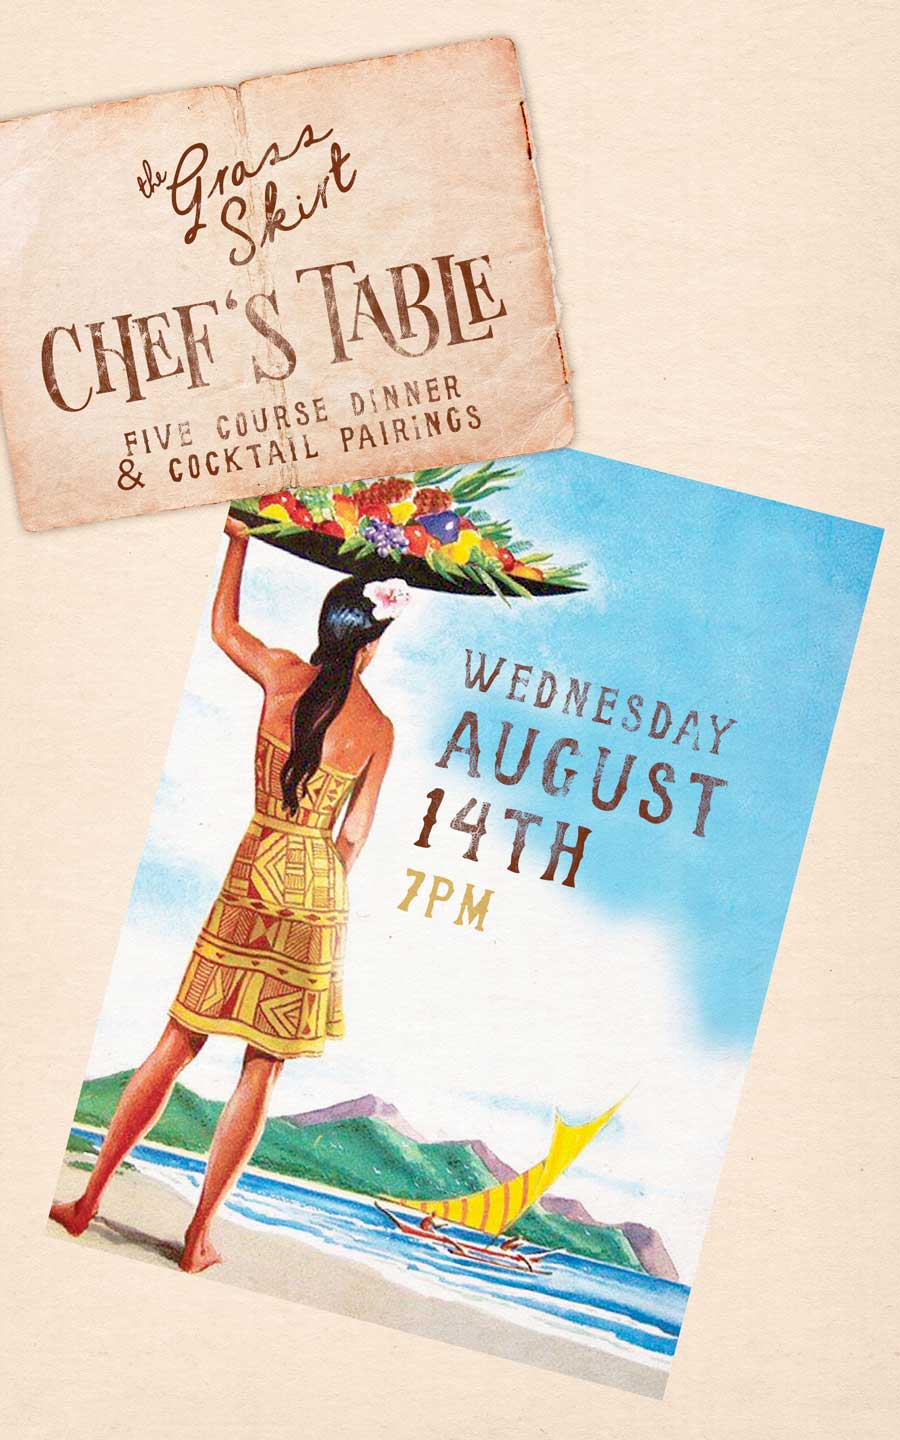 Chef's Table at The Grass Skirt - August 14th - SDCM Restaurant Group